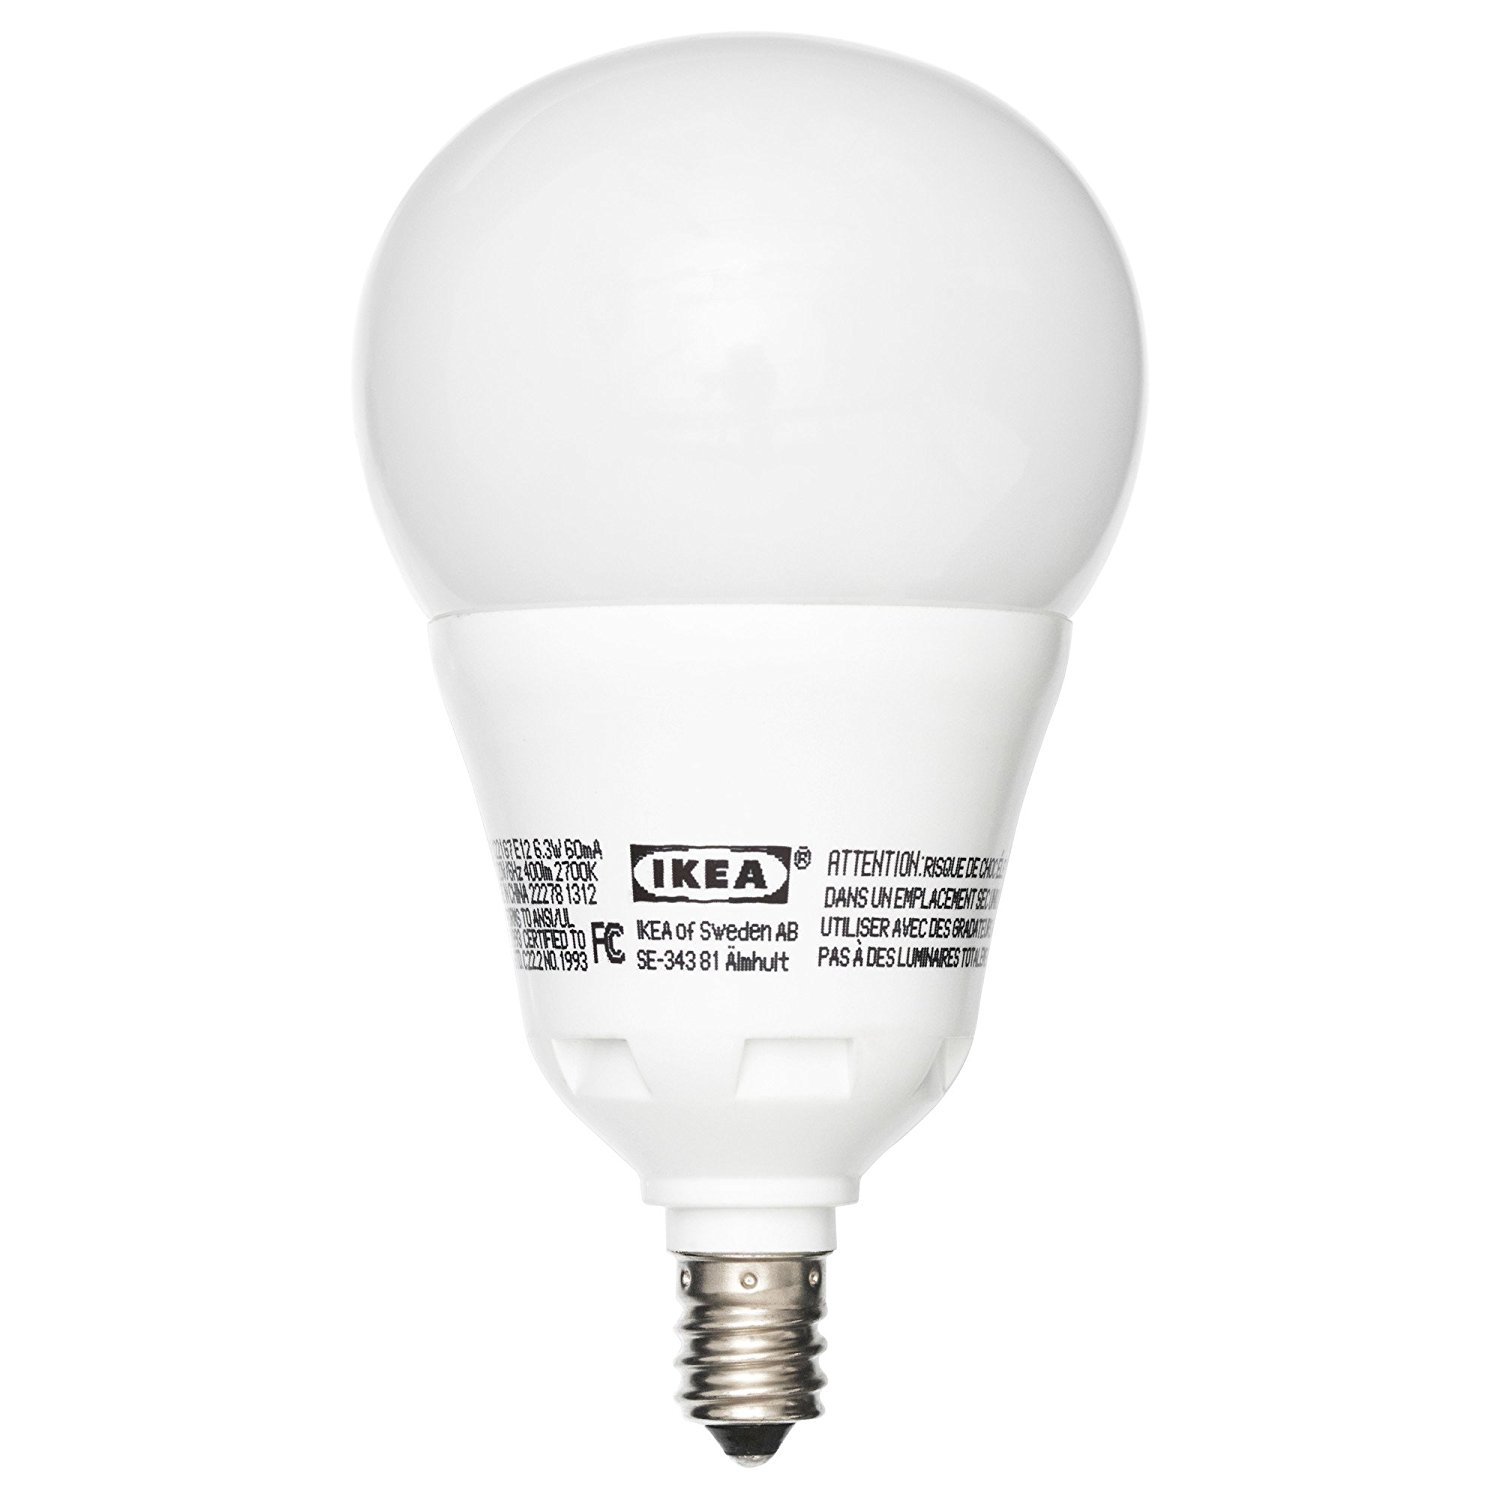 f8b000312f6 Get Quotations · Ikea Ledare E12 400 LED Light Bulb 6.3 Watt DIMMABLE Globe  Opal